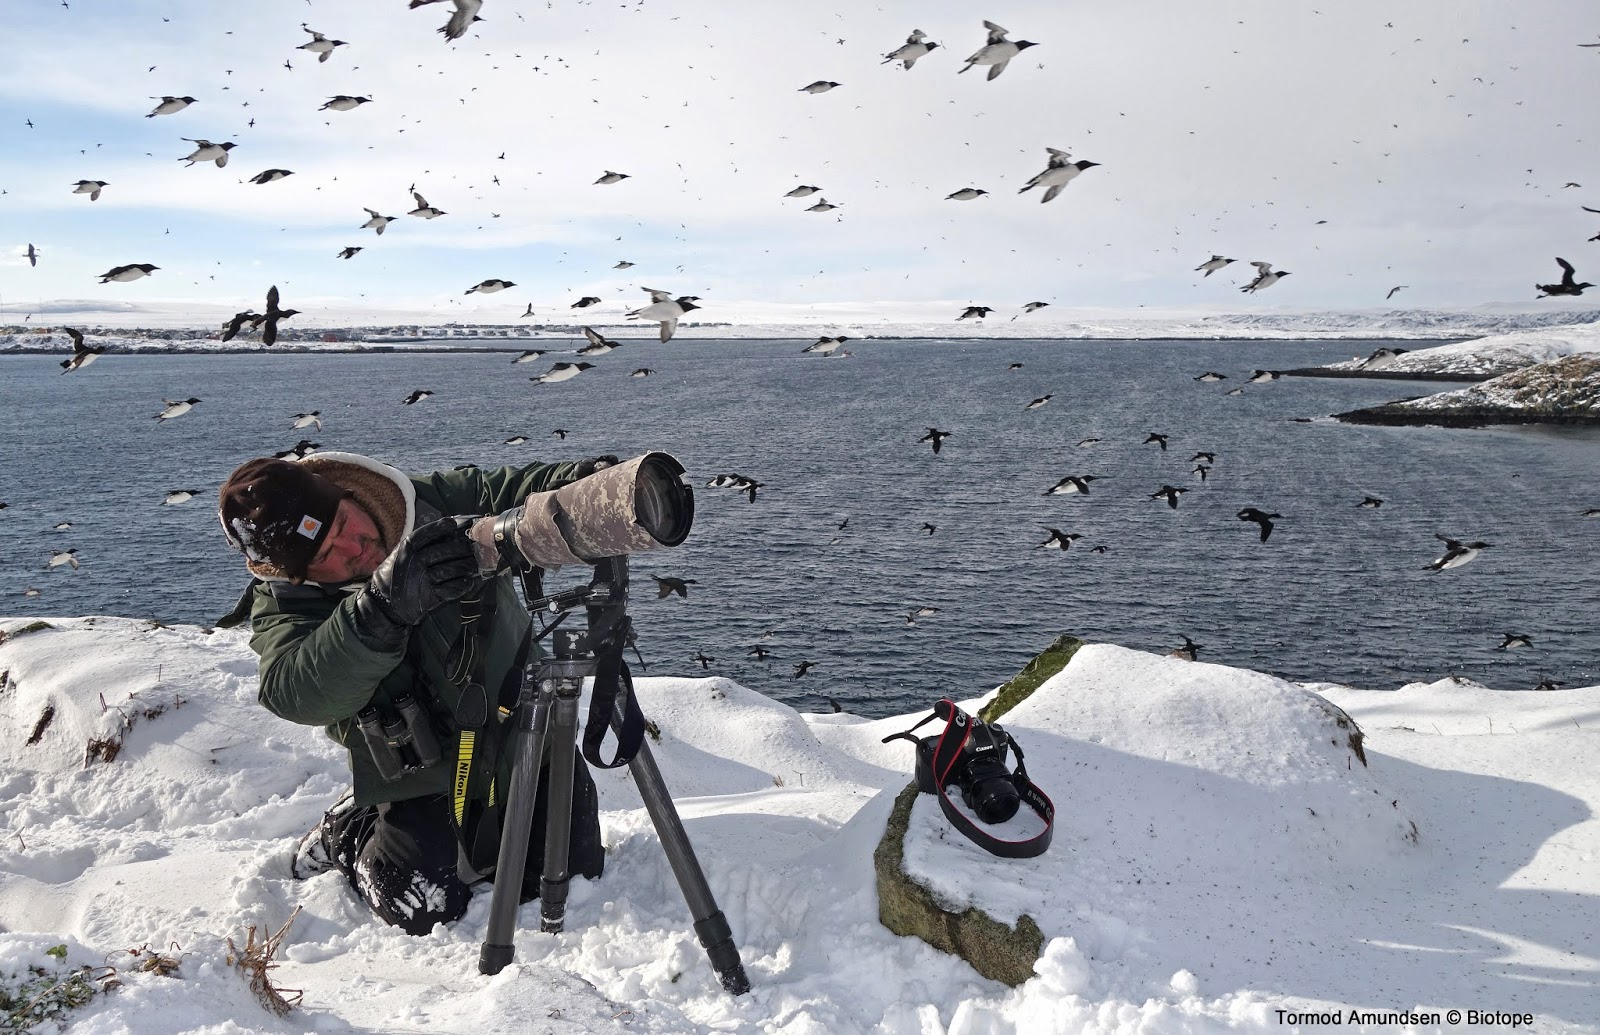 Richard_Crossley_at_Horn_ya_bird_cliff_Gullfest_2014_March_Amundsen_Biotope.jpg